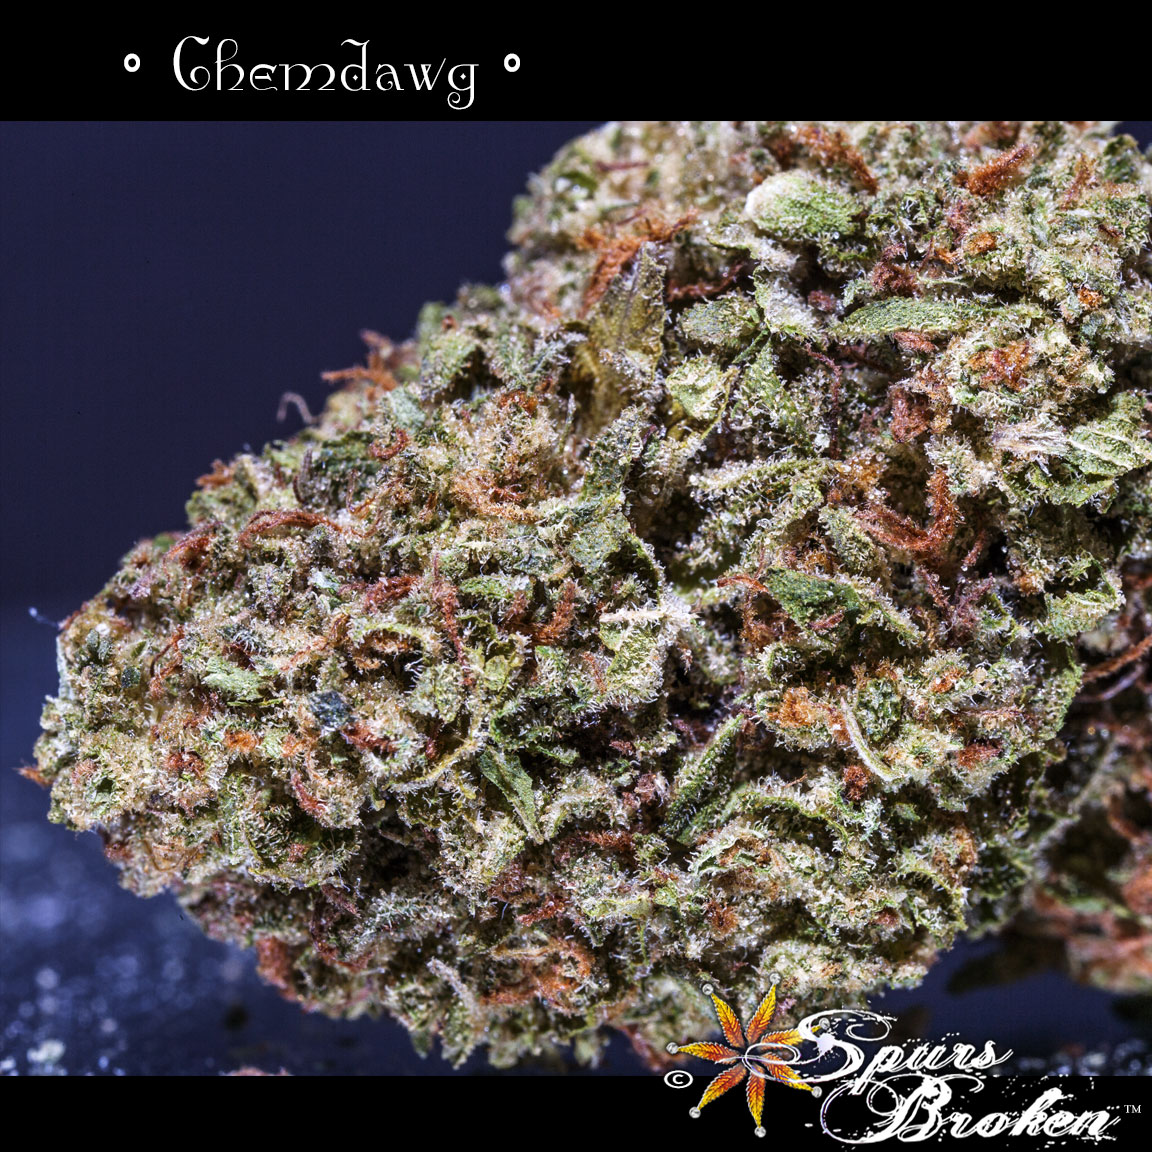 Chemdog - Cannabis Macro Photography by Spurs Broken (Robert R. Sanders)